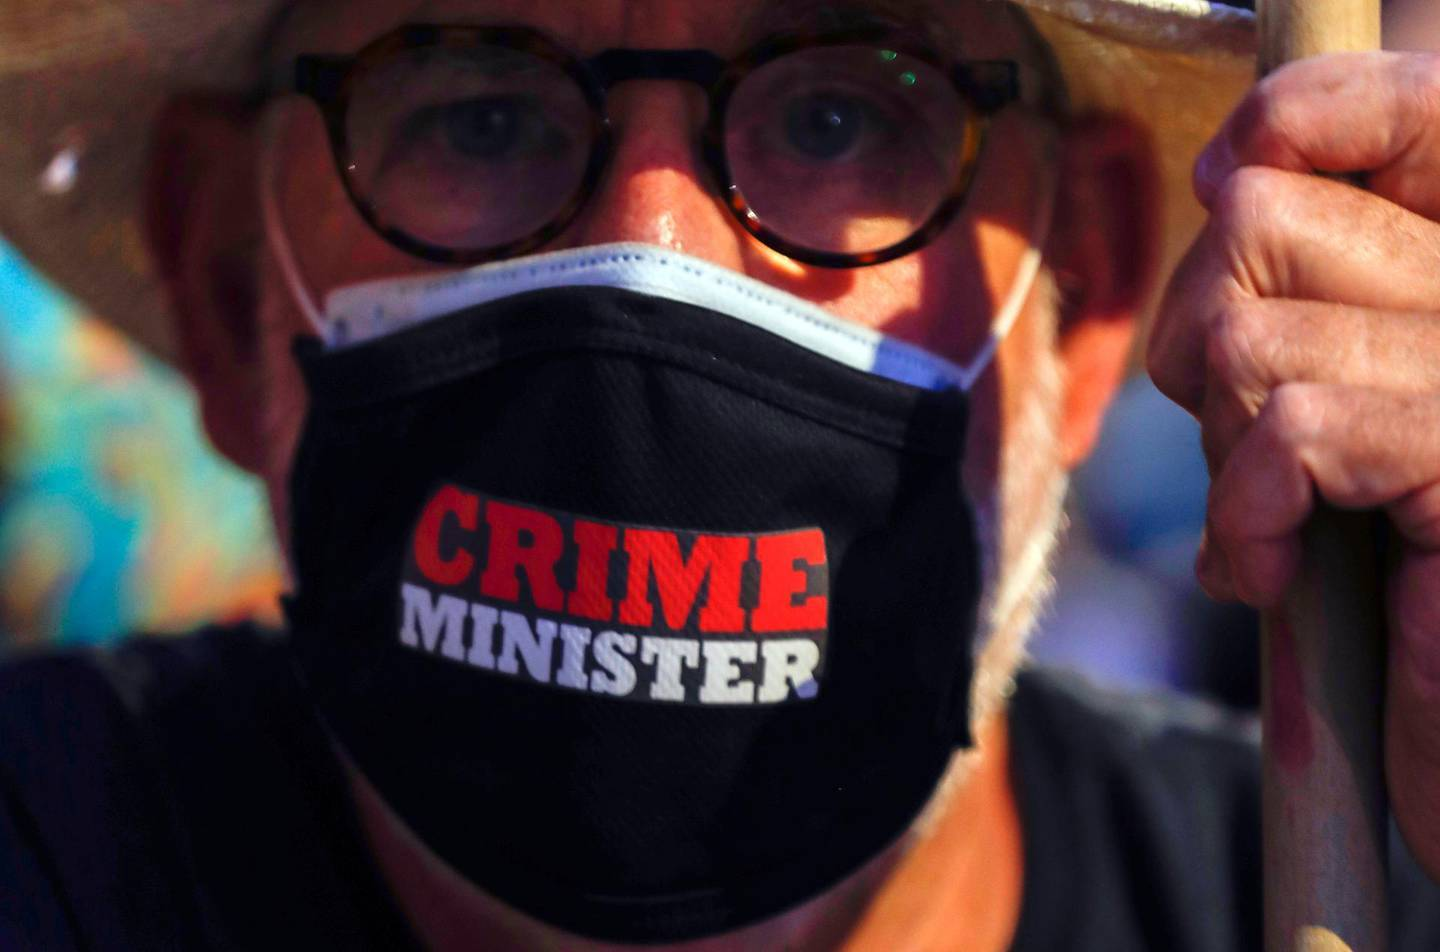 epa08563206 A man with a face mask reading 'Crime Minister' during a protest against Israeli Prime Minister Benjamin Netanyahu outside his residence in Jerusalem, Israel, 23 July 2020. Netanyahu faces an ongoing trial with indictments filed against him by the State Attorney's Office on a charges of fraud, bribery, and breach of trust.  EPA/ATEF SAFADI